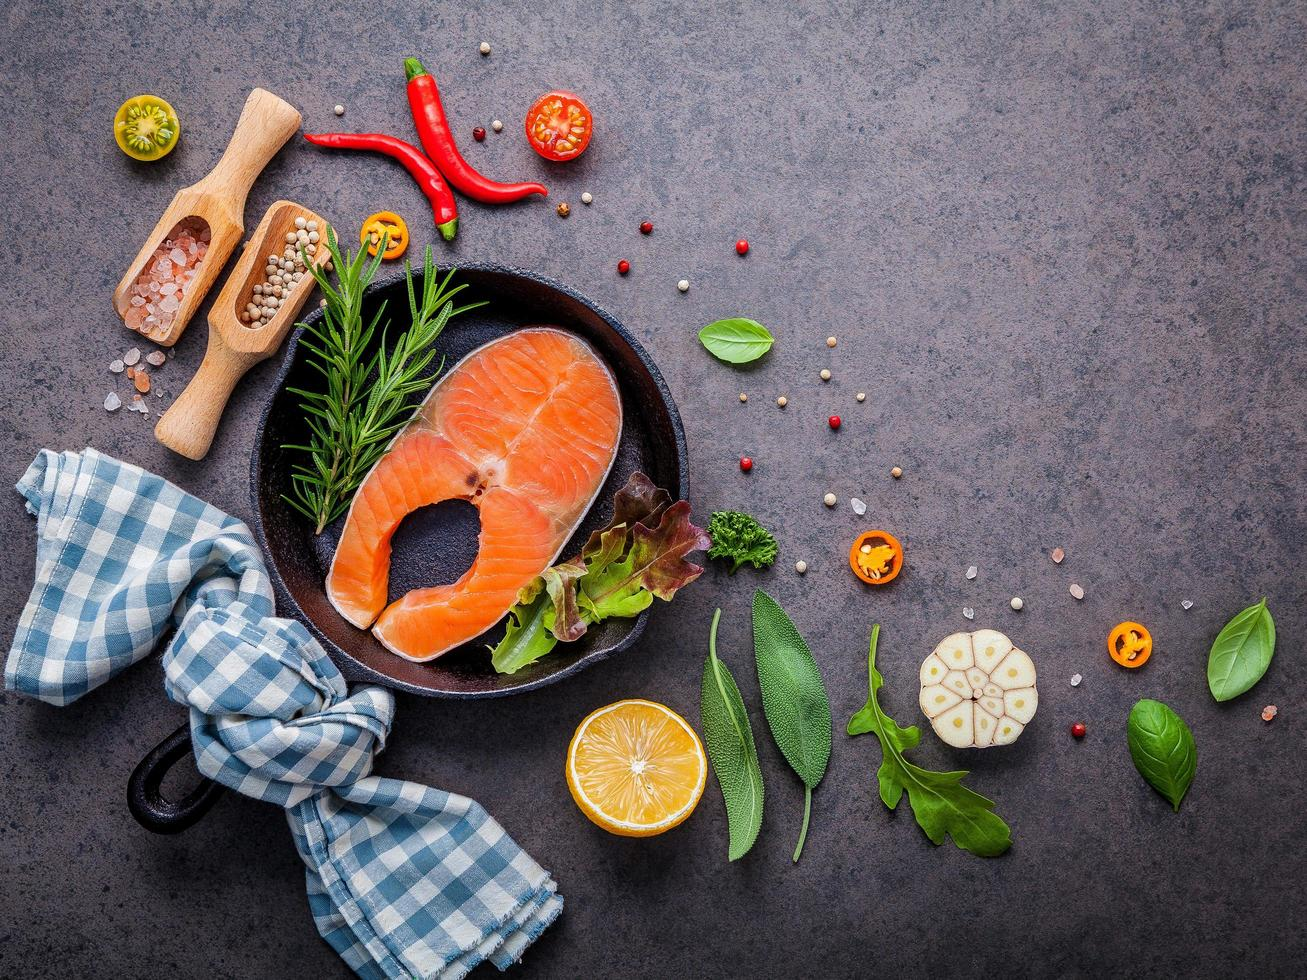 Raw salmon fillet with fresh herbs and spices photo